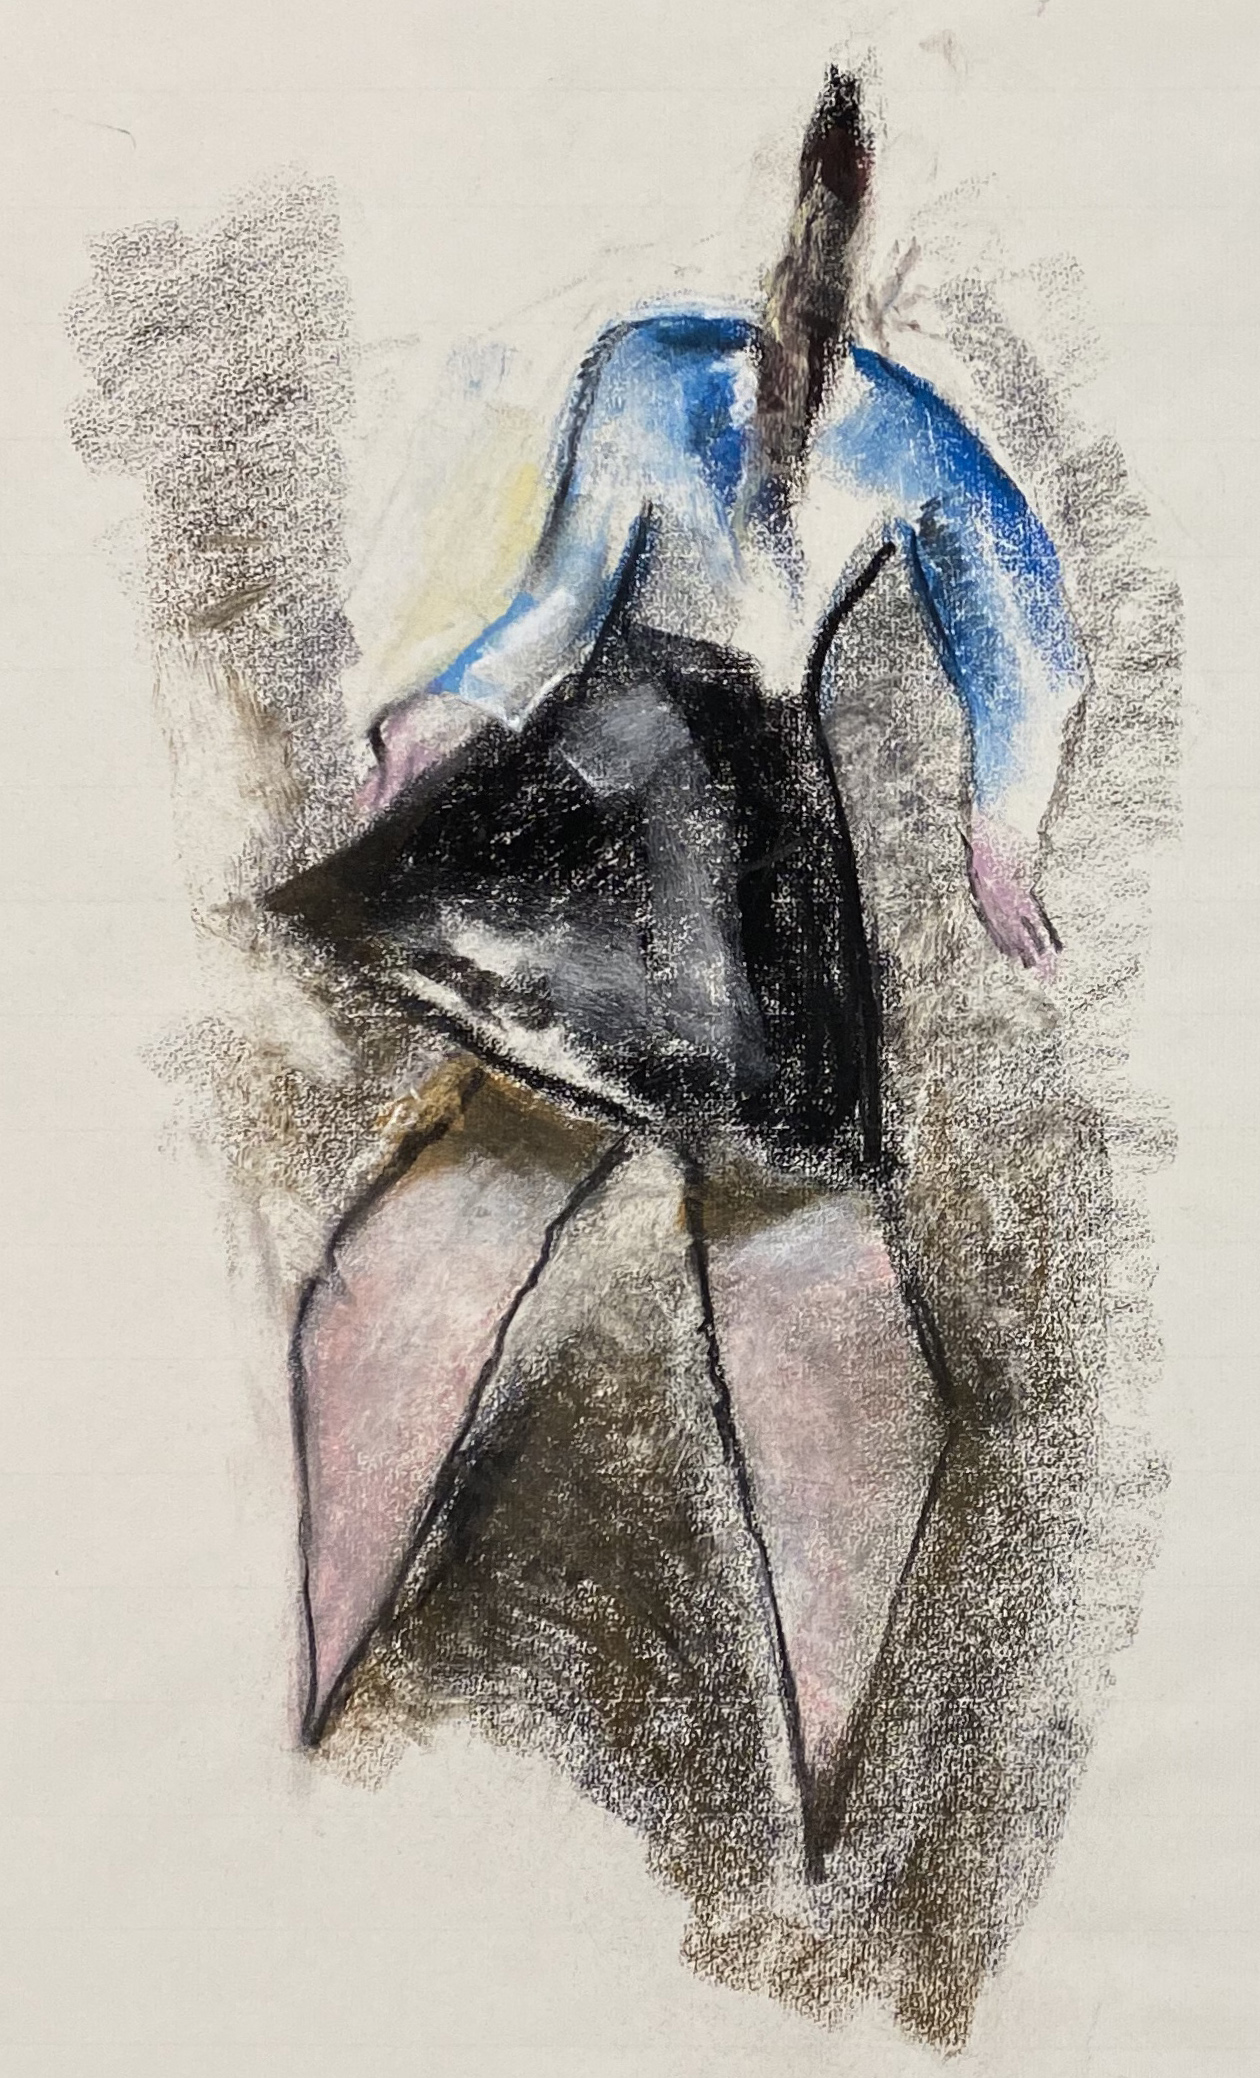 Werner Scholz | Girl | 1980 | Pastels on handmade paper | monogrammed and dated | 63 x 48 cm